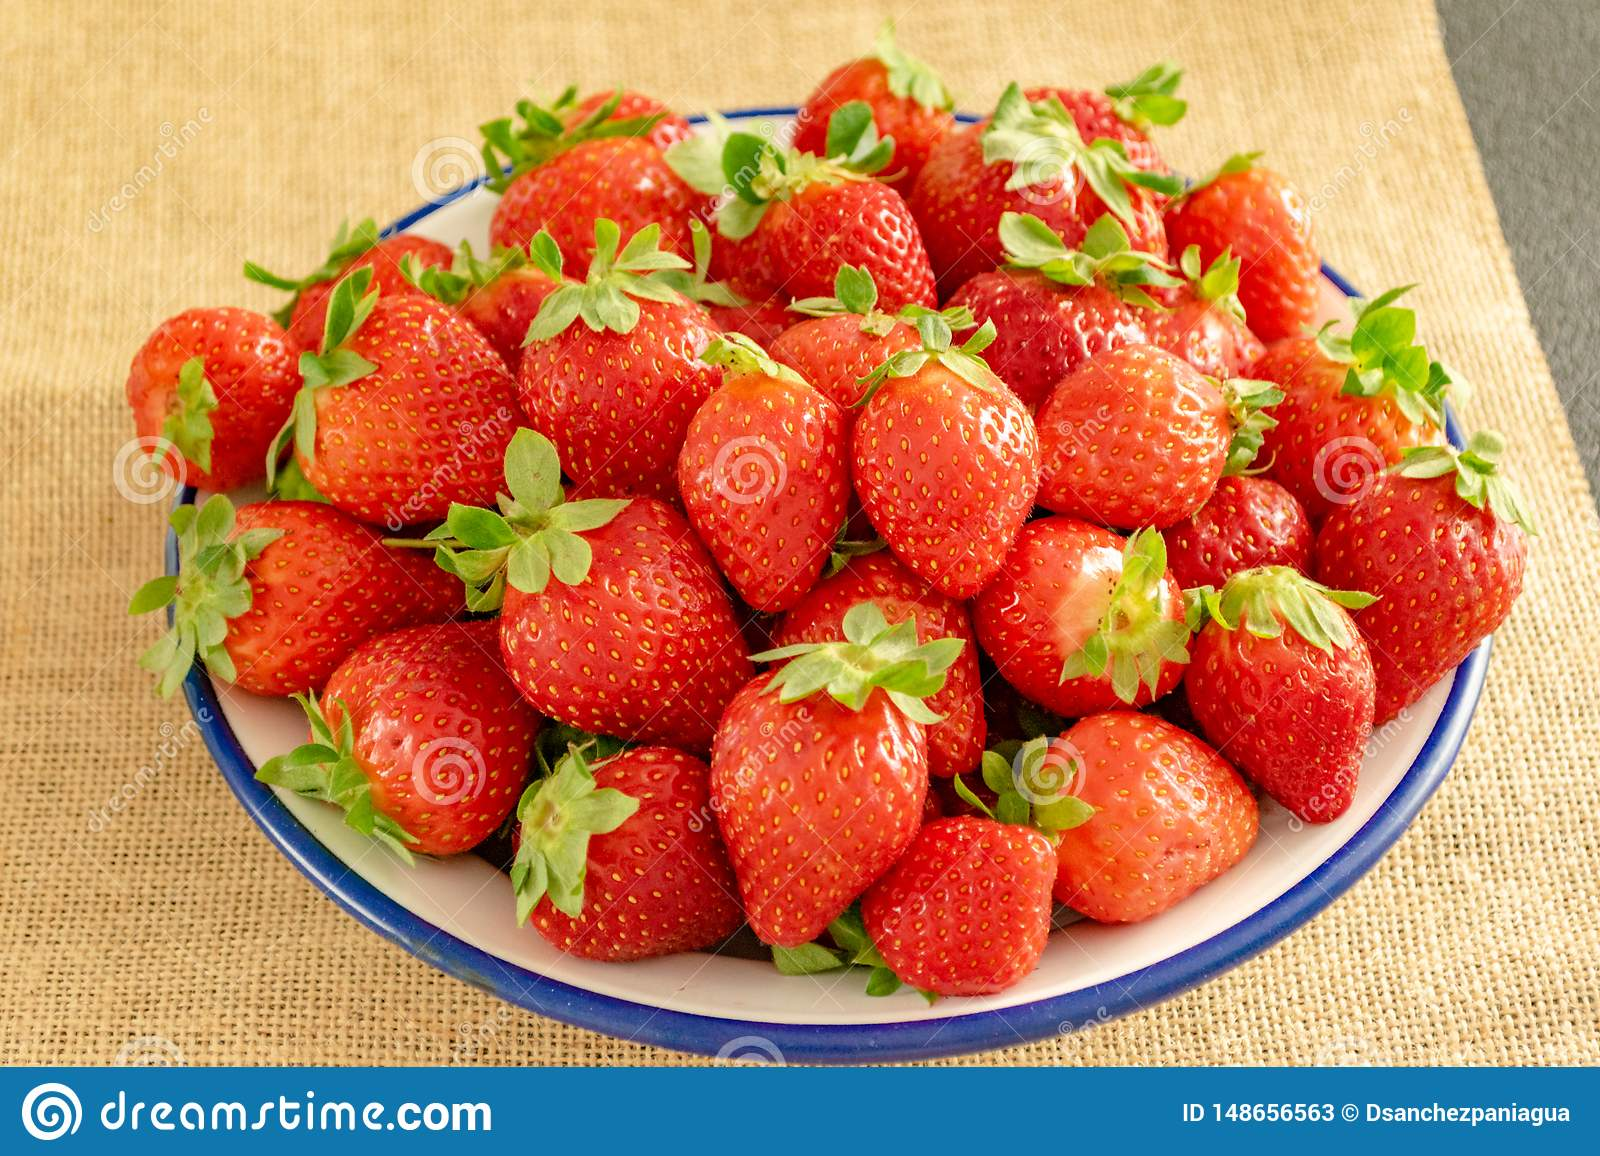 Plate of strawberries on textile background